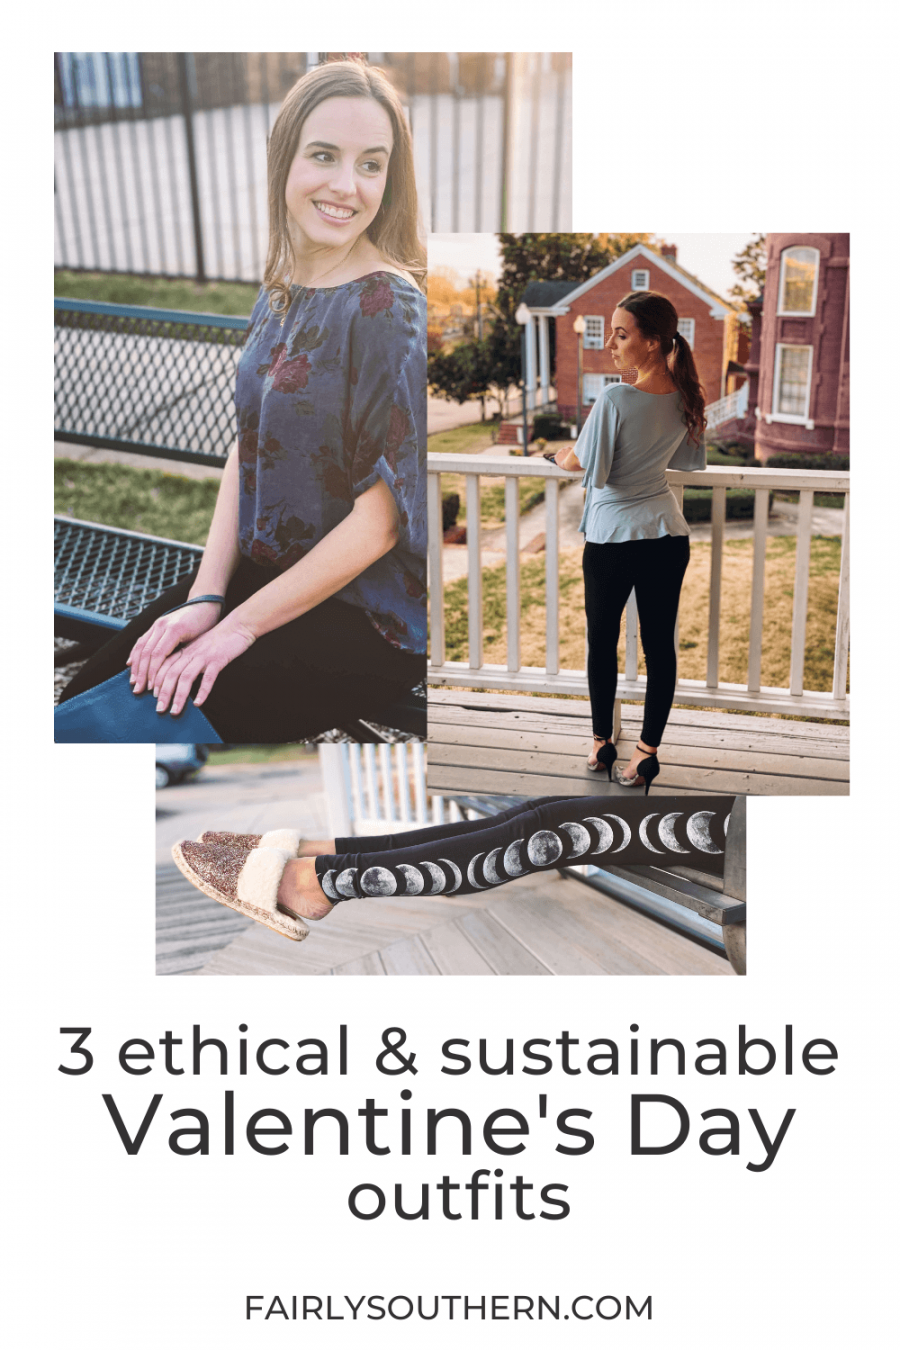 3 Ethical & Sustainable Valentine's Day Outfits